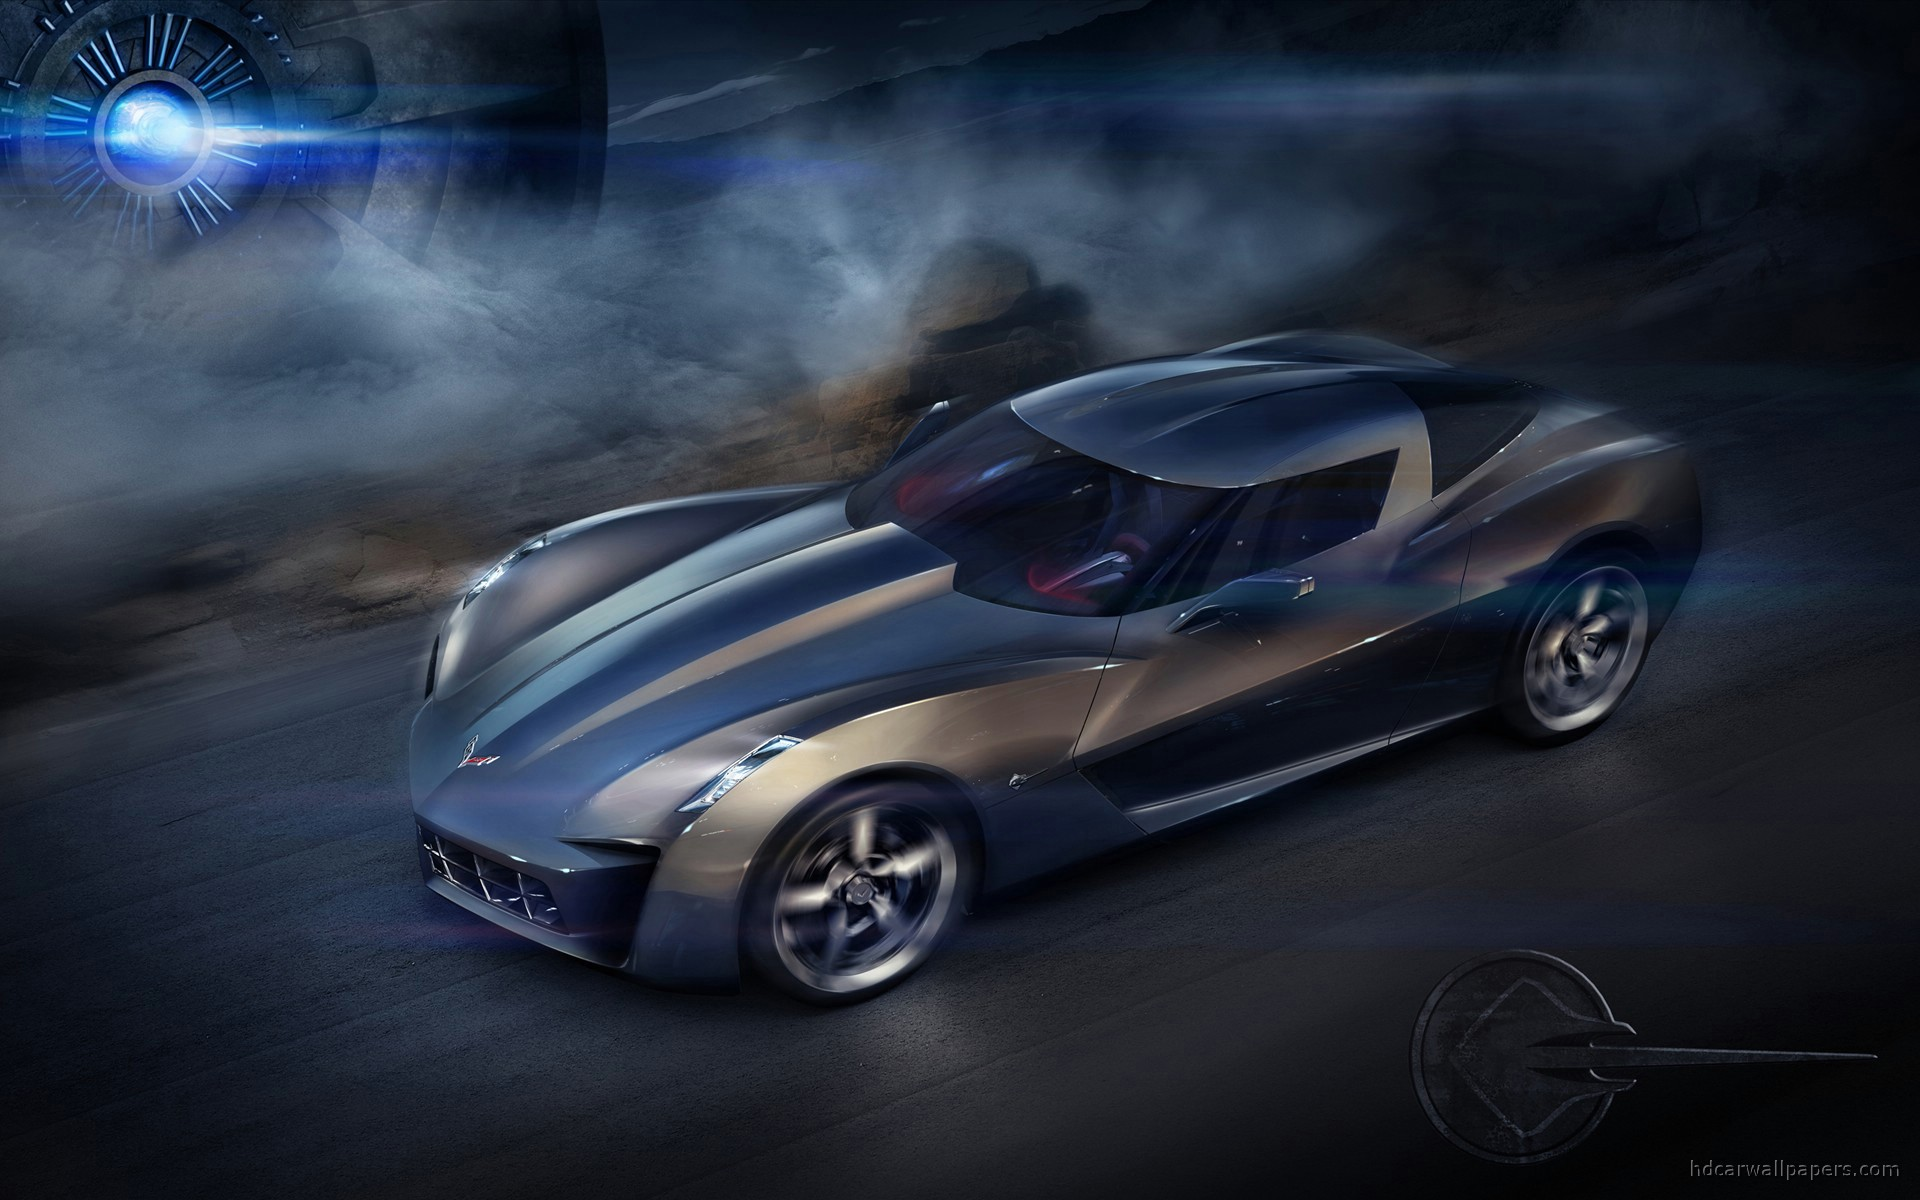 2016 Chevrolet Corvette Stingray Wallpaper | HD Car Wallpapers